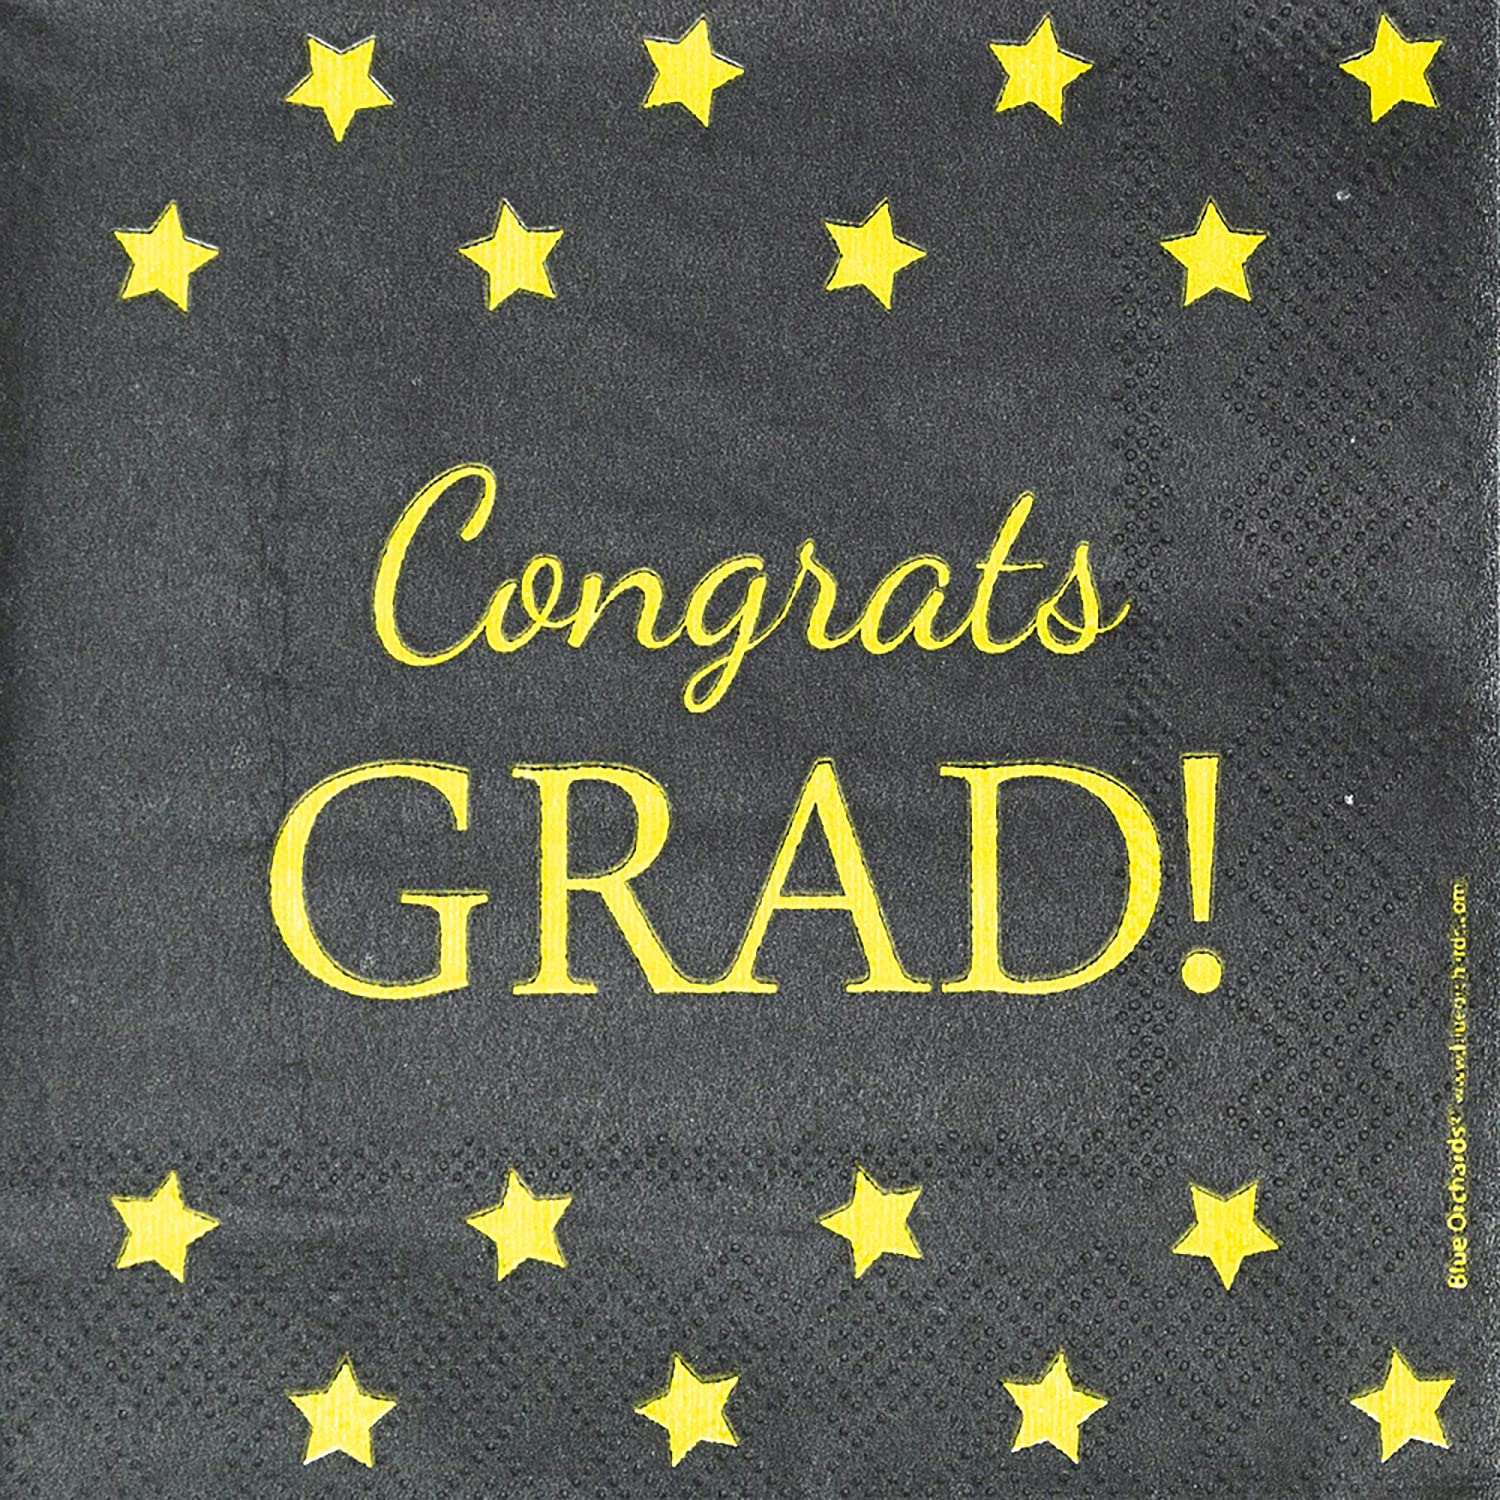 Graduation Napkins, Congrats Grad Party Supplies, Cocktail and Beverage Napkins, 100-Pack, 5 x 5 Inches Folded